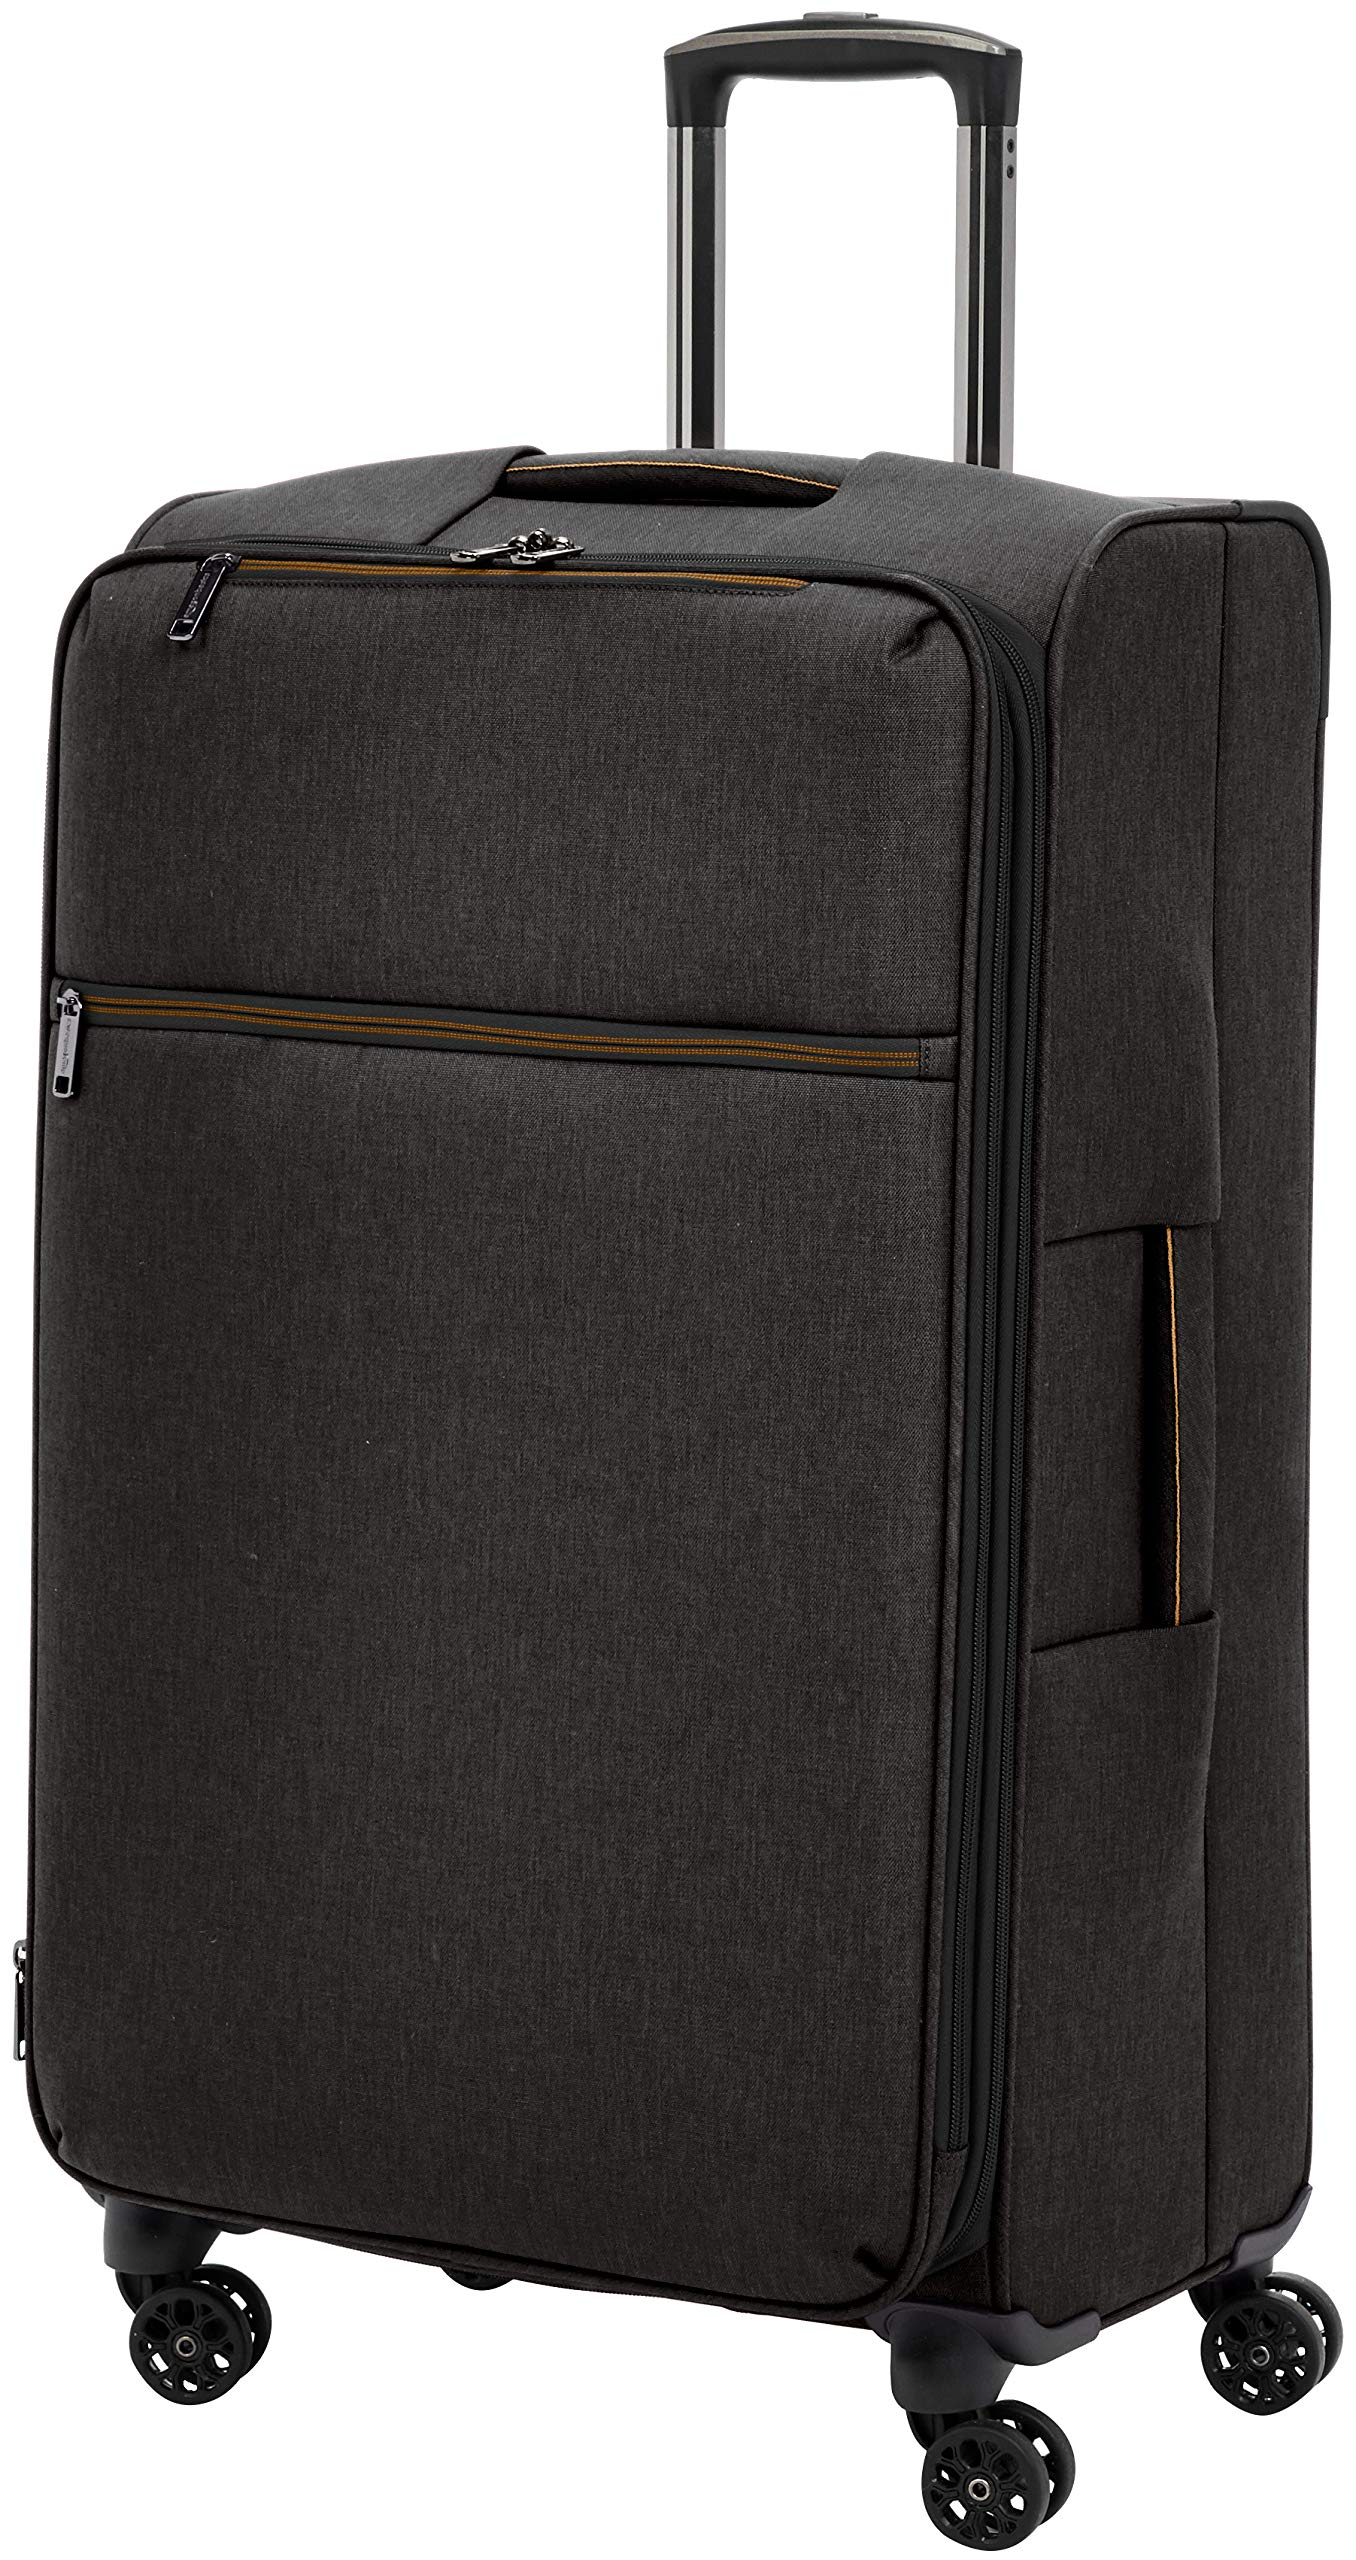 AmazonBasics Belltown Softside Rolling Spinner Suitcase Luggage - 29 Inch, Heather Black